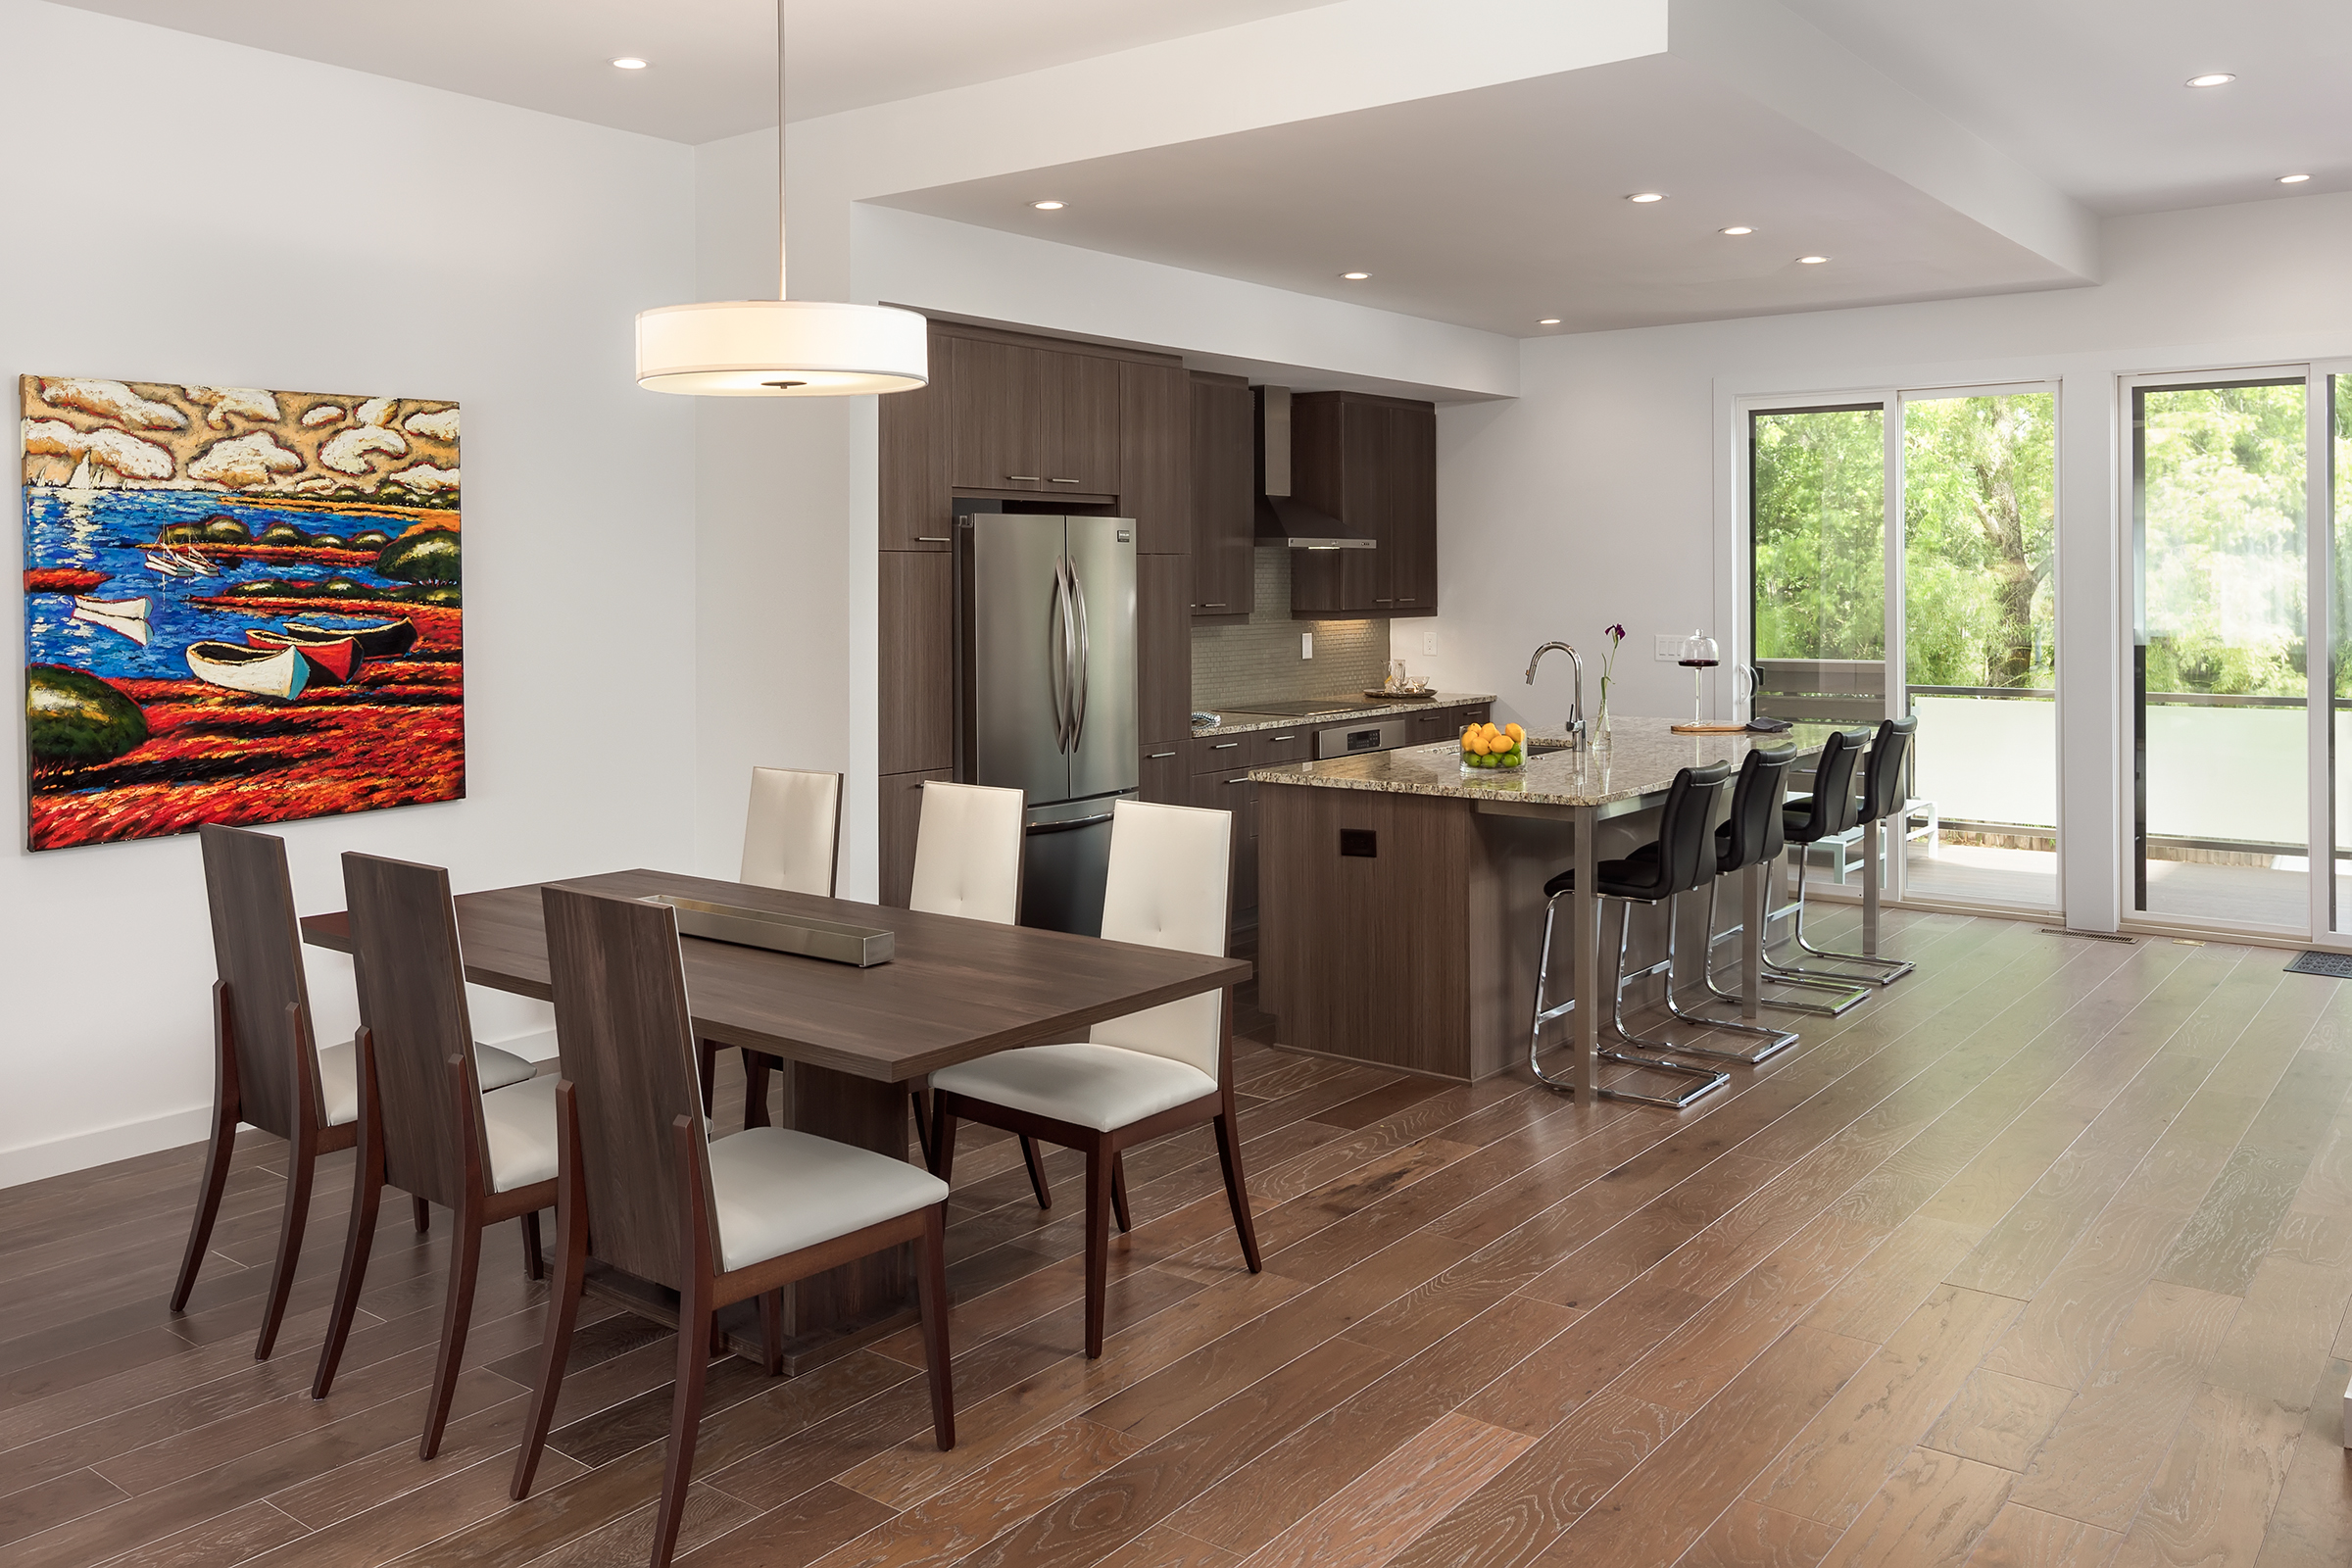 016 1307 Axis_Kitchen Dining Area.jpg